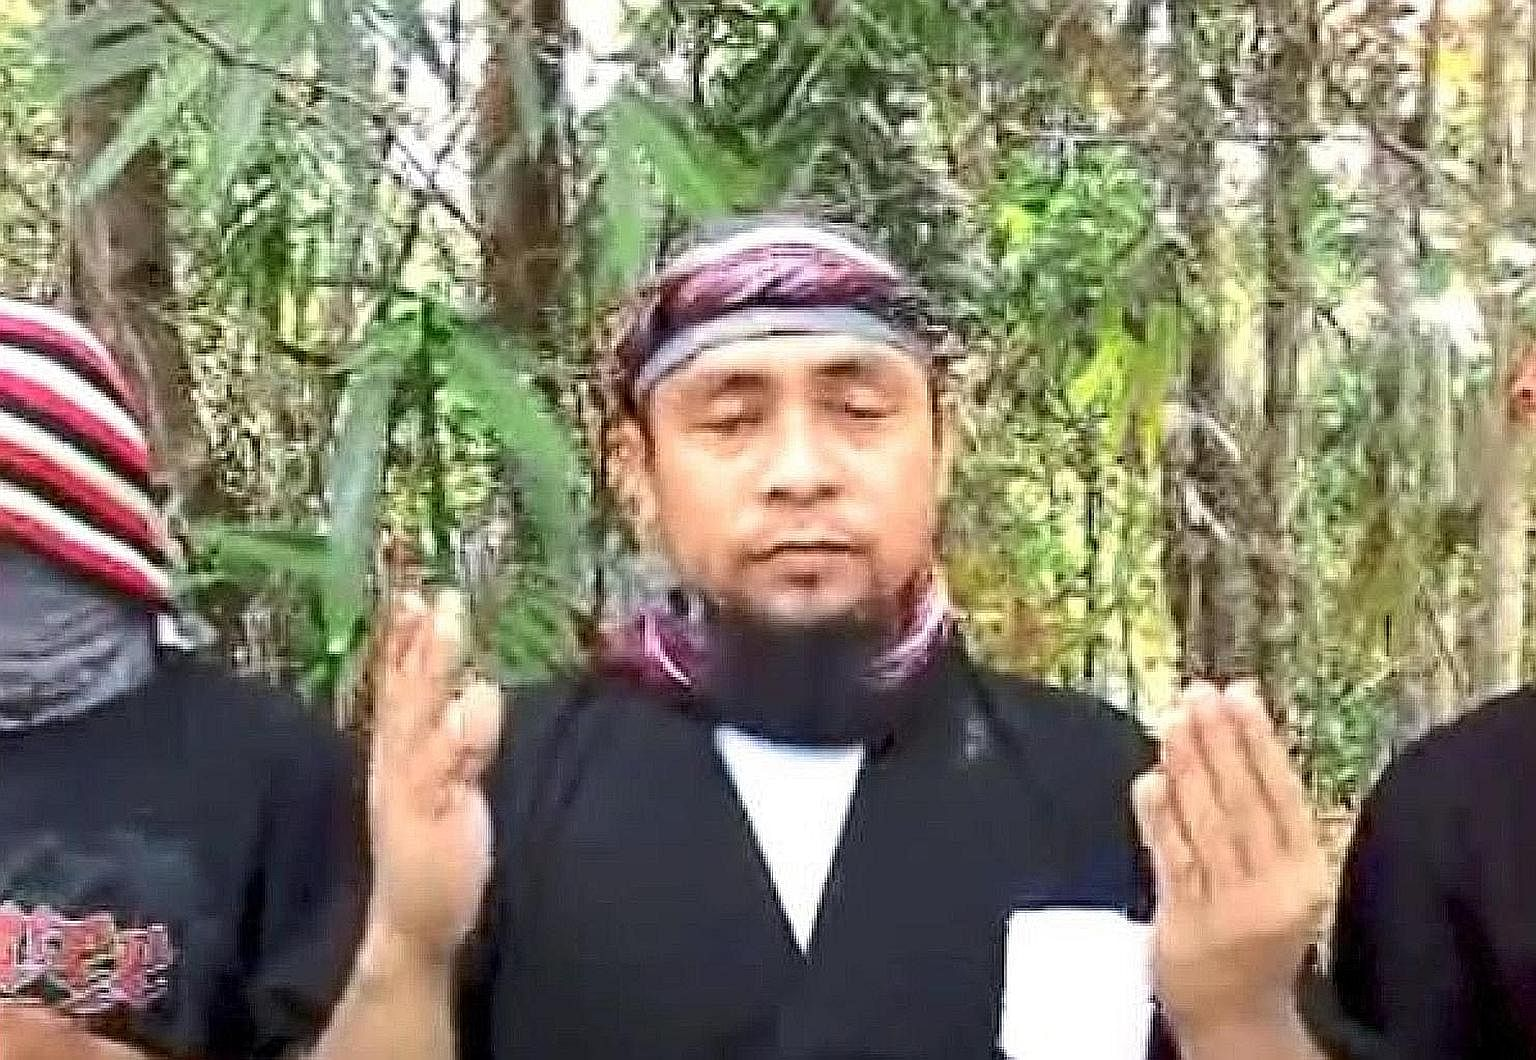 Abu Sayyaf chief Isnilon Hapilon was designated by ISIS as its top man in South-east Asia last year.